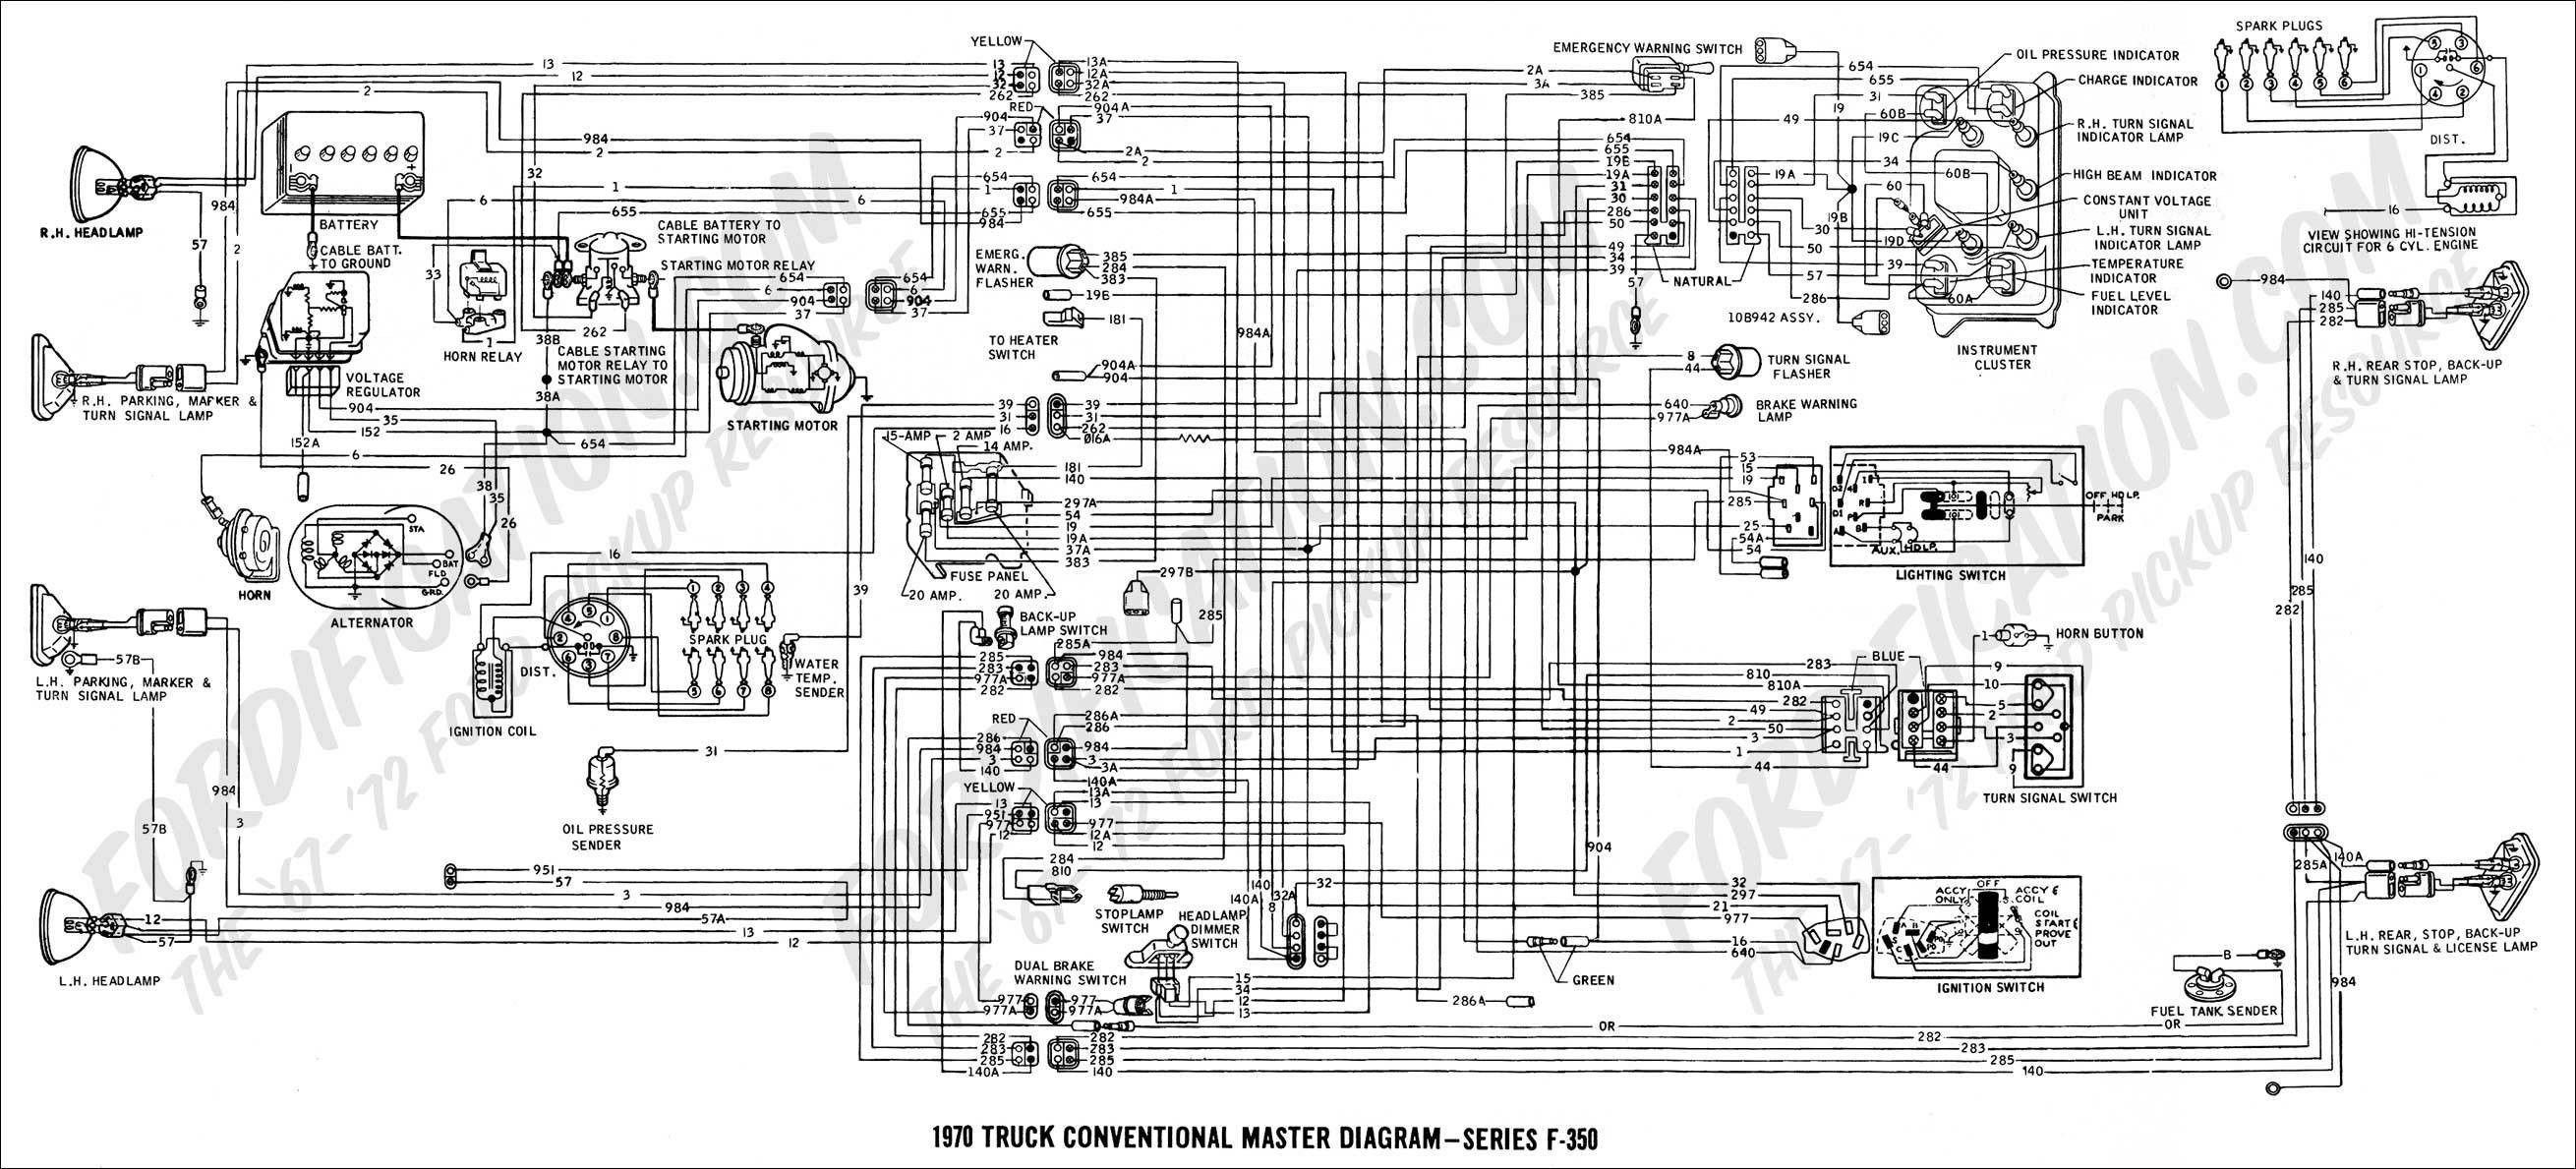 Ford F250 Wiring Diagram In 2020 Powerstroke Ford F350 Ford F350 Diesel